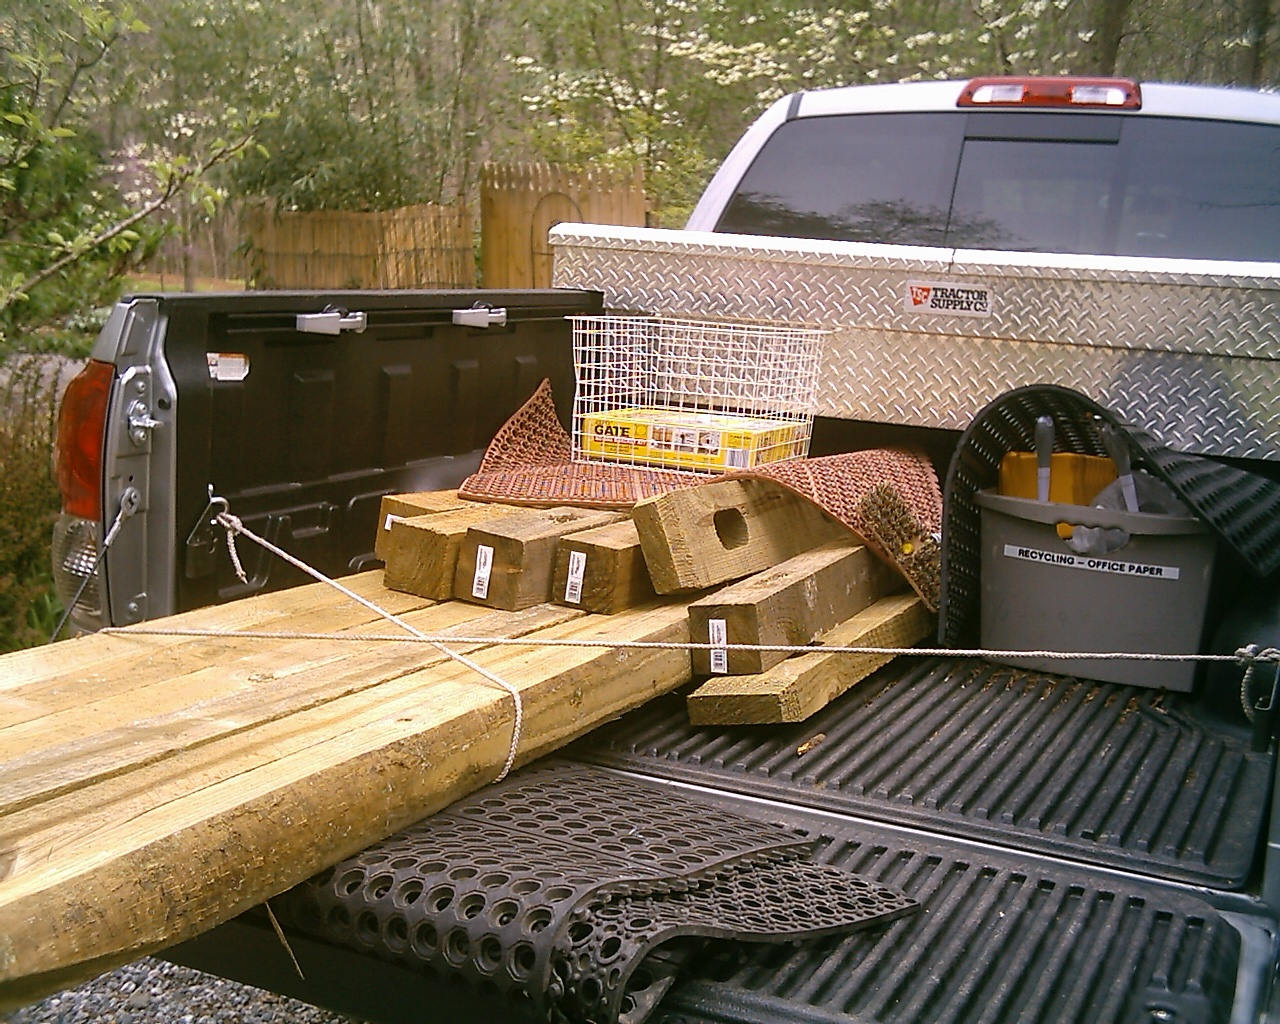 How To Strap Down Items On Truck Bed